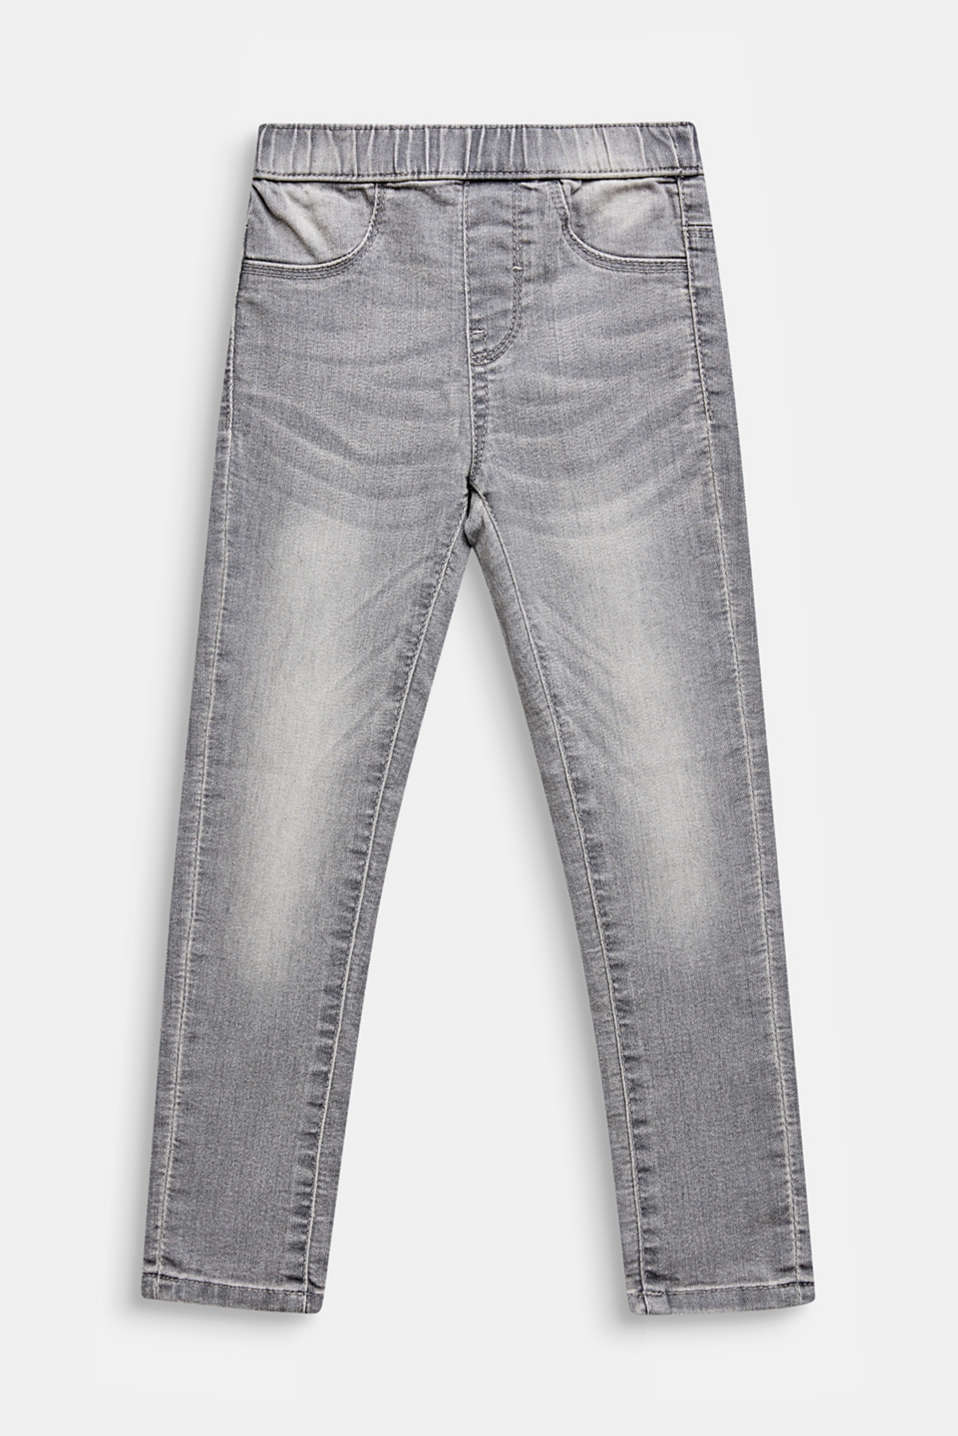 Esprit - Grijze jegging met garment-washed look